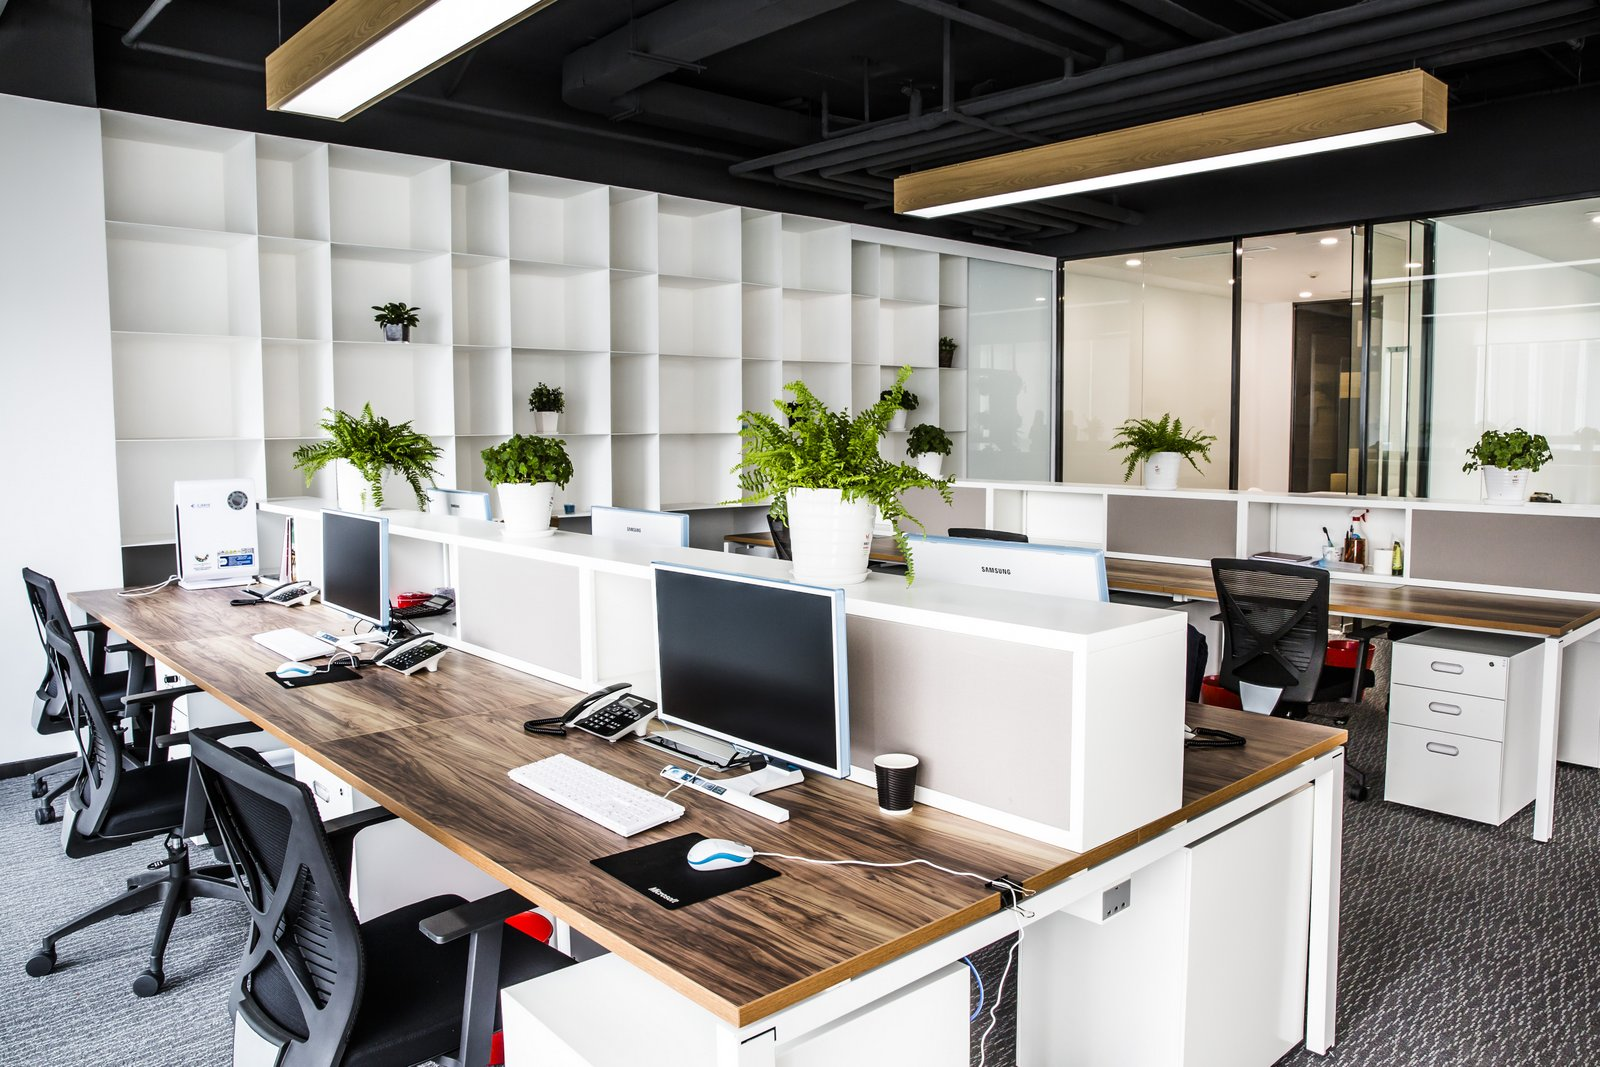 office idea. Apply This Idea For Your Work Space It Easy Sharing Each Others, And Make Communication Much Better . Don\u0027t Forget To Put Plant On Working Office